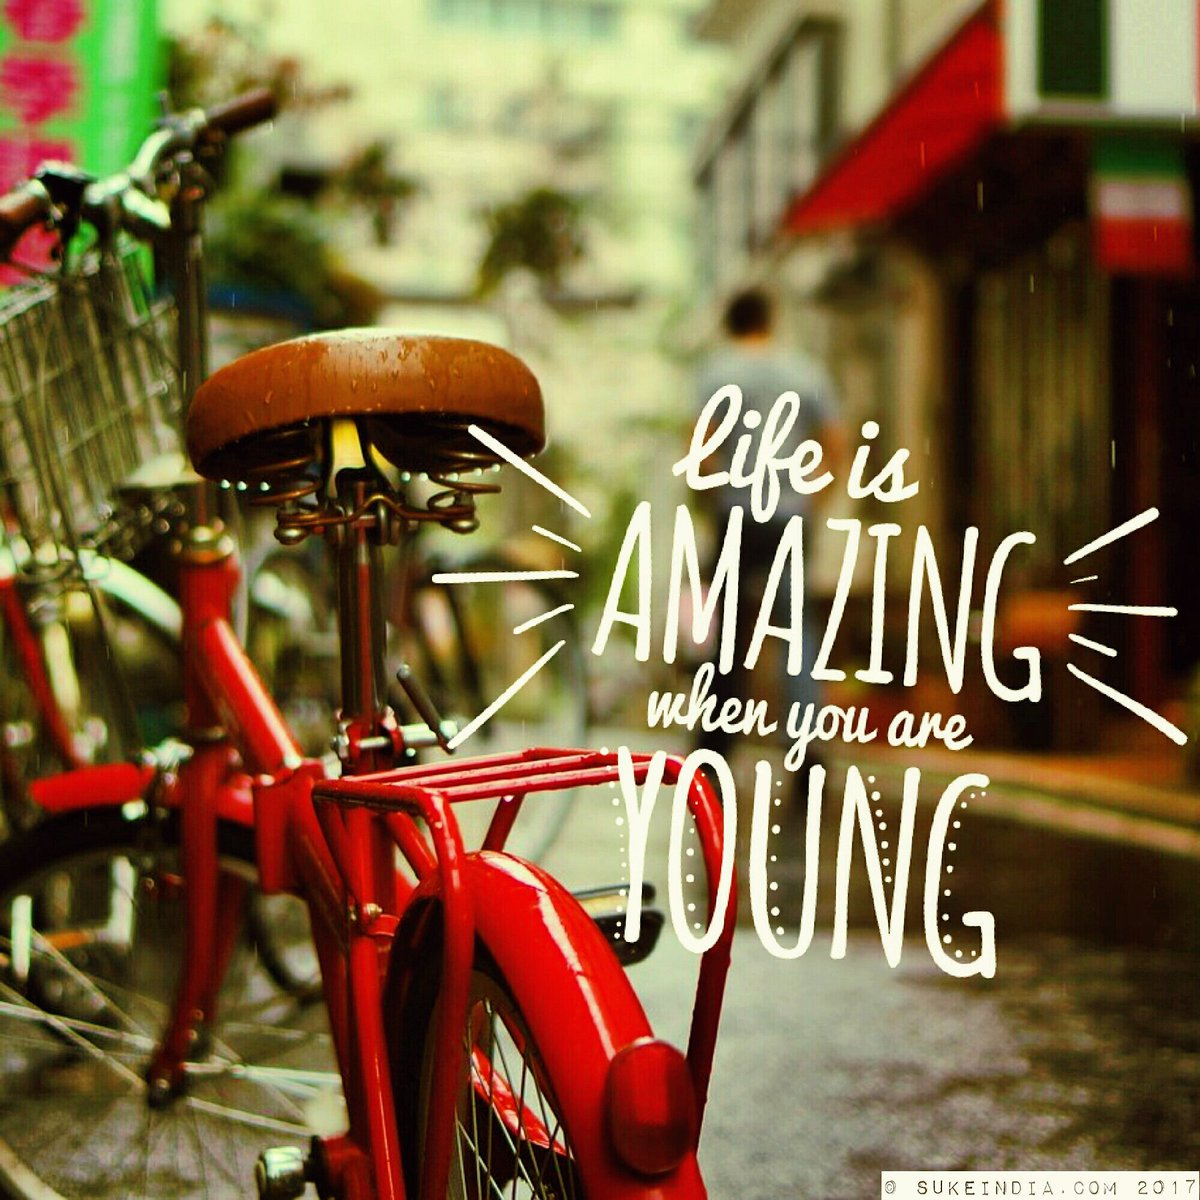 Stay Young! #YourOdds #TravelTuesday #junky #young #TuesdayThoughts #life #travelgram #tweep #retweet #follo4follo #like #lifestyle<br>http://pic.twitter.com/pE4a6CCozA